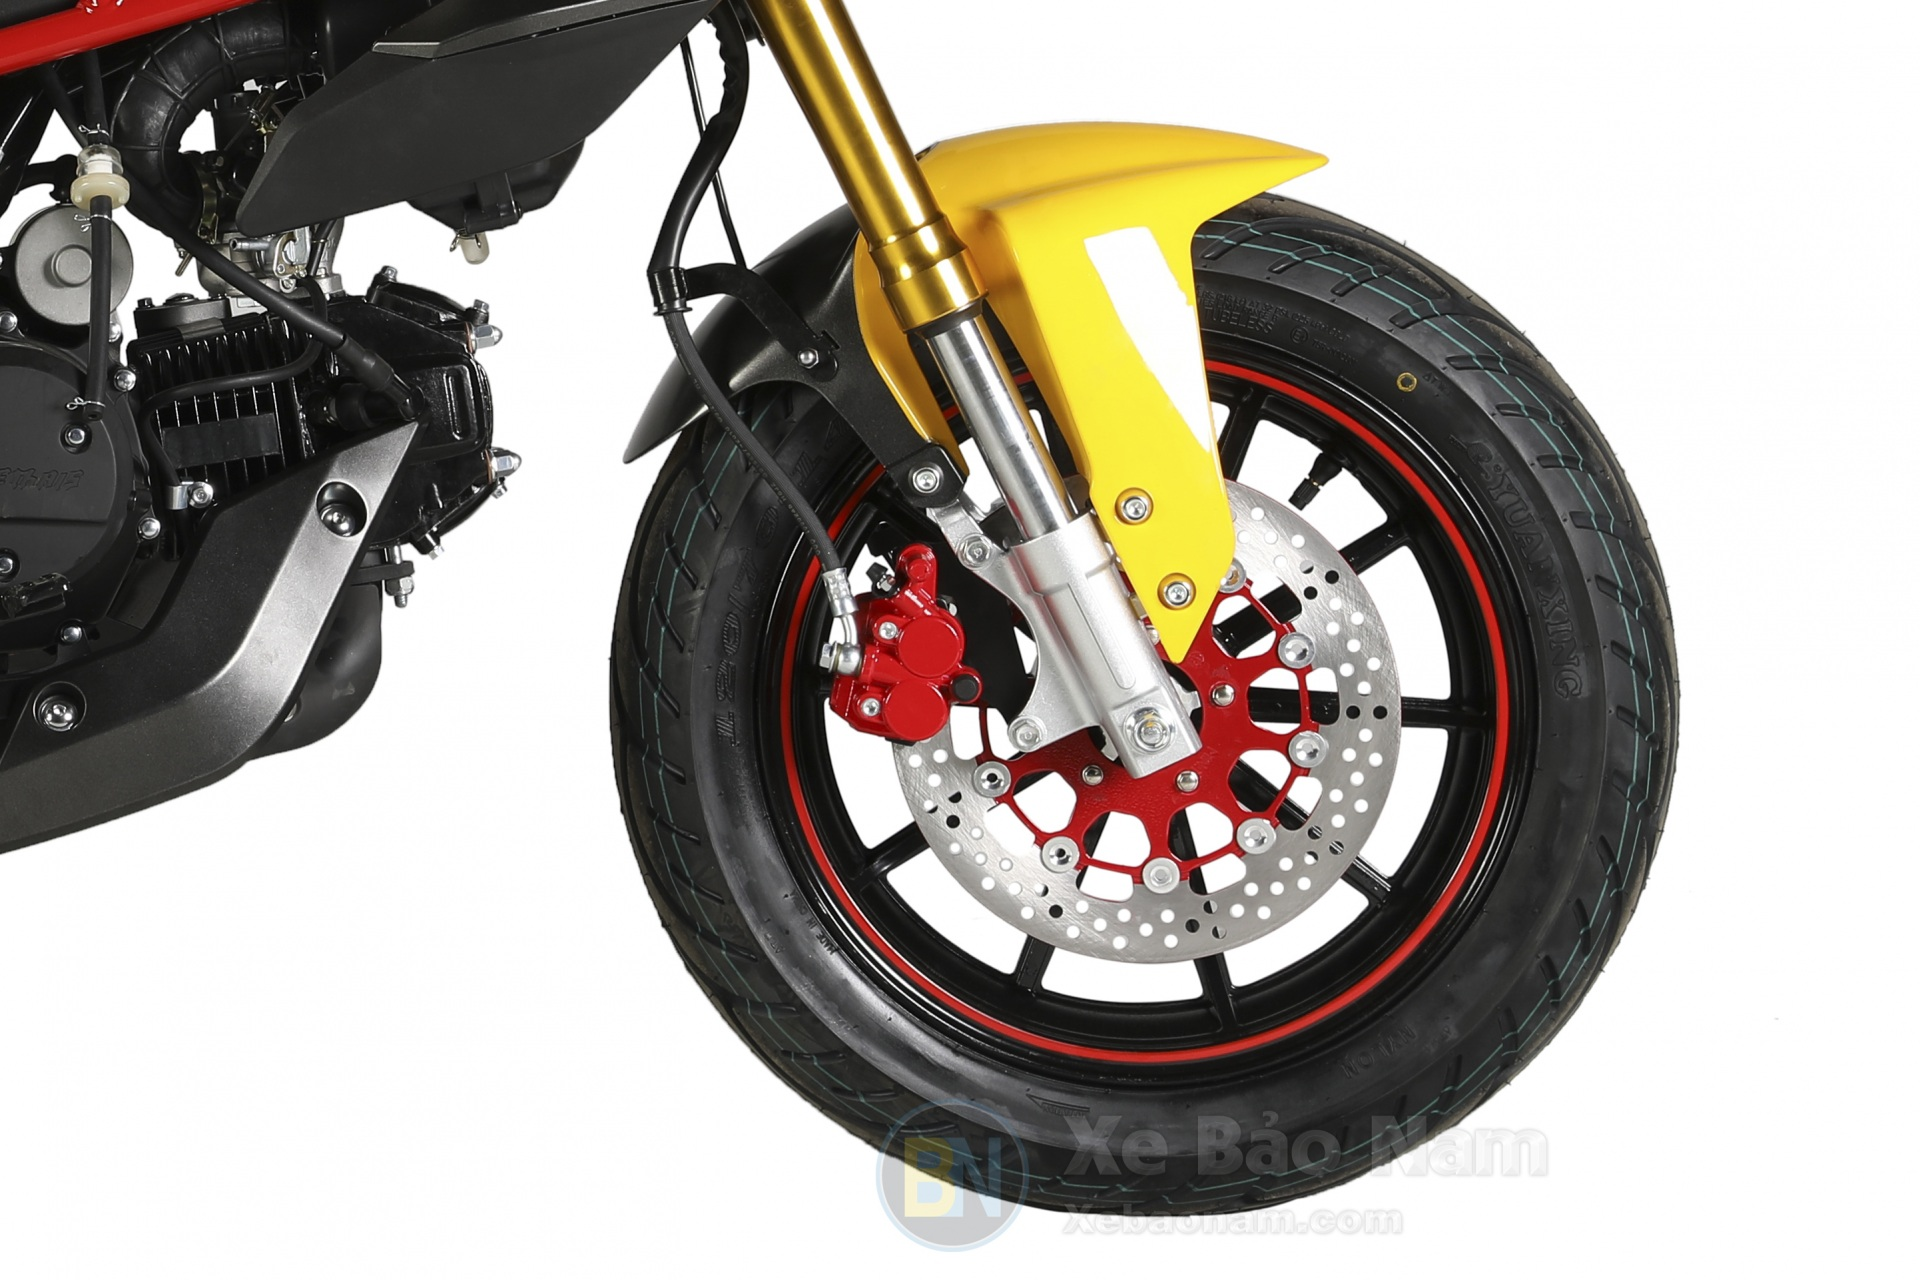 xe-may-mv-agusta-mini-110-new-xebaonam-7